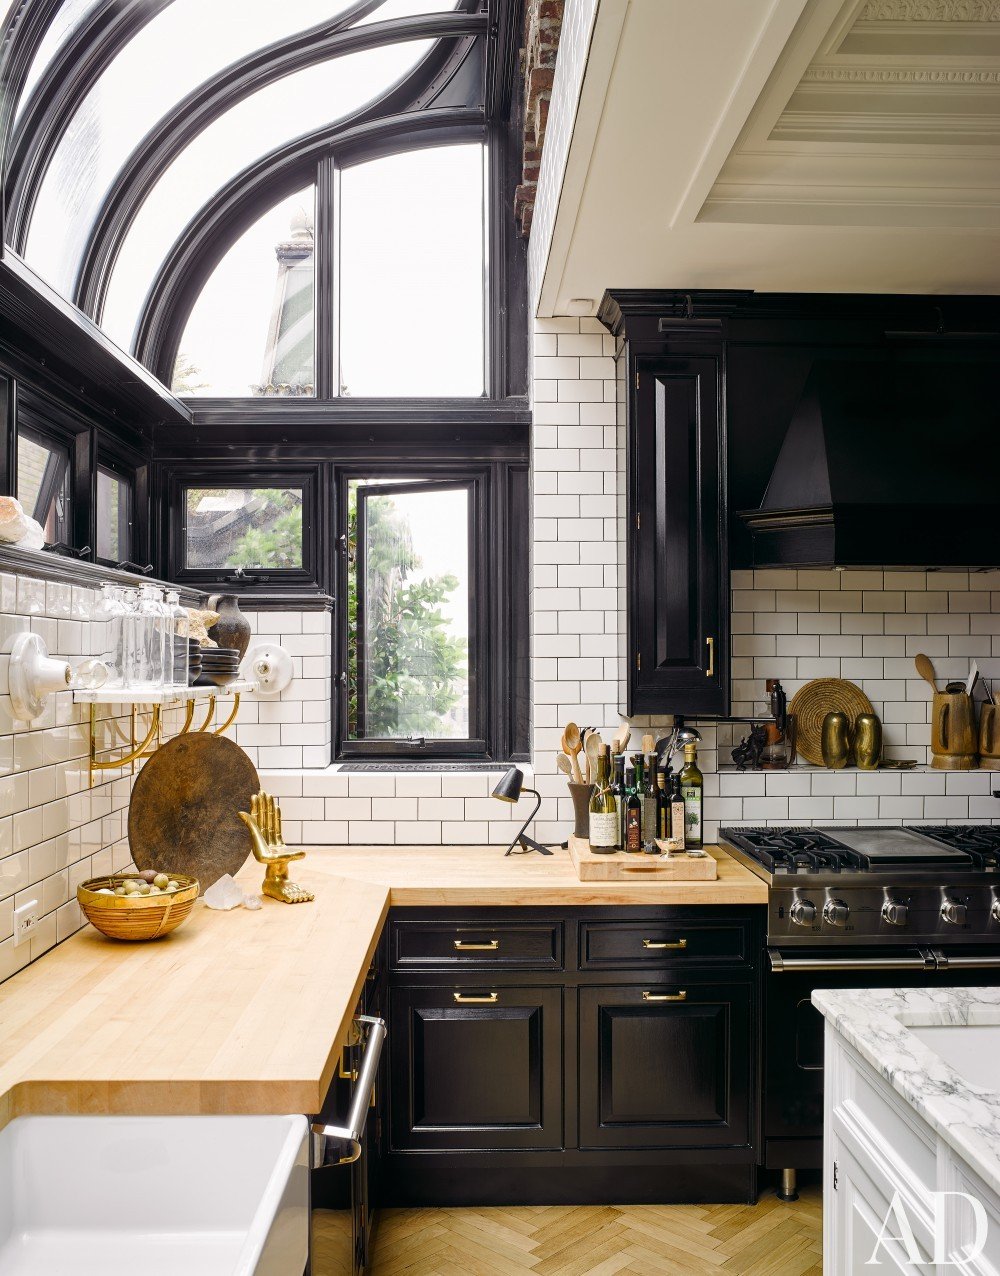 Kitchen by Nate Berkus and Jeremiah Brent in New York, NY